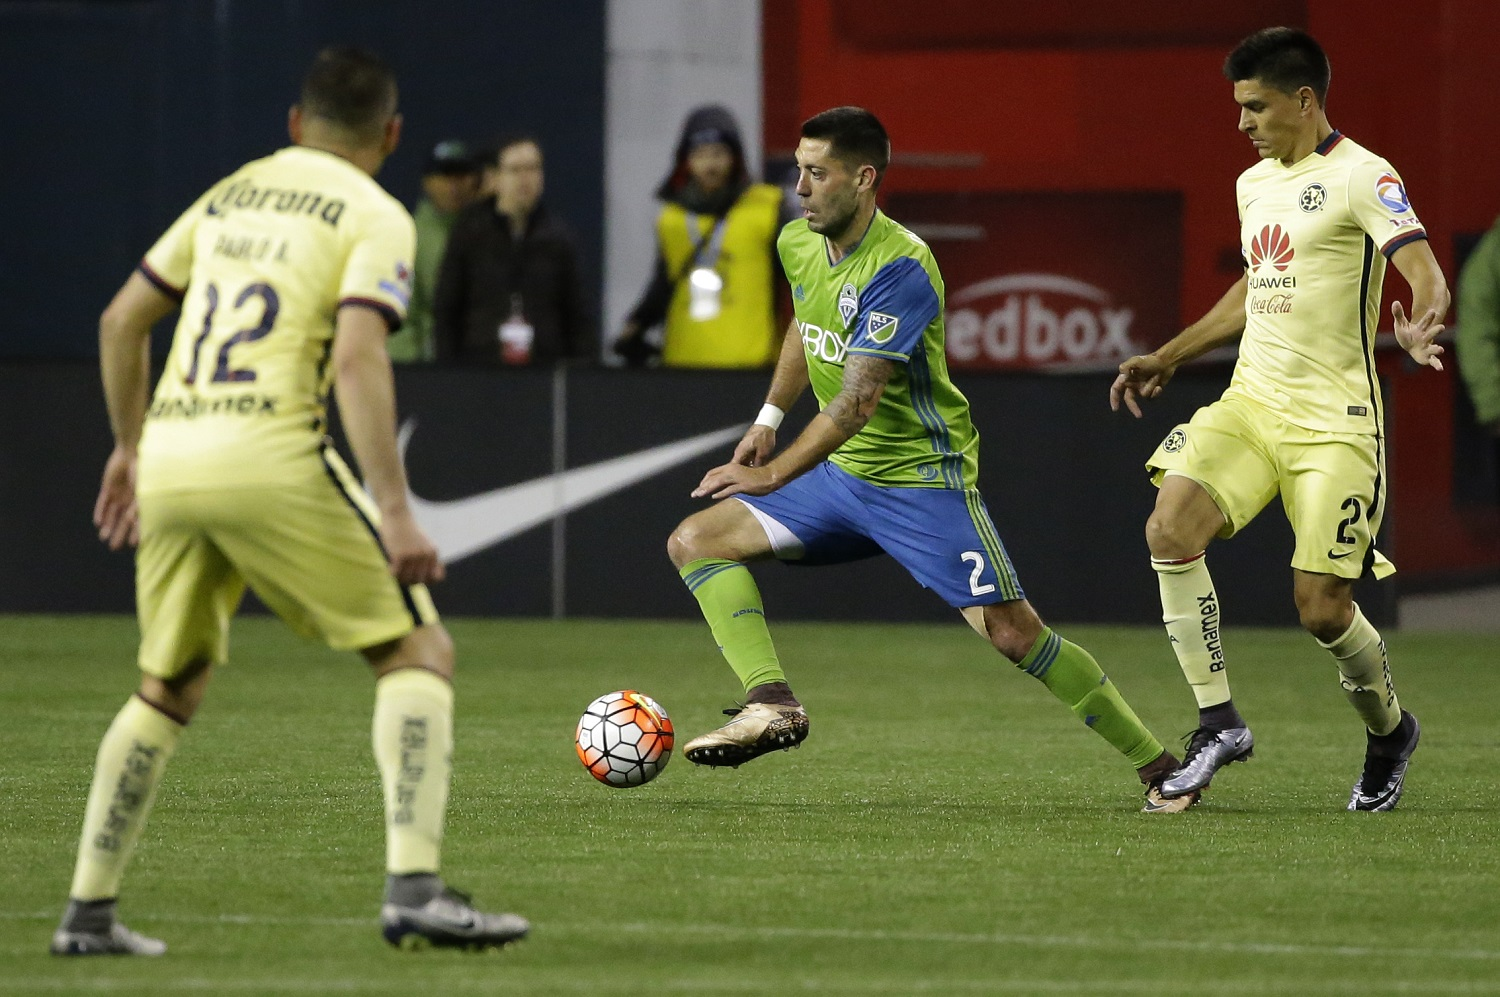 Seattle Sounders forward Clint Dempsey, center, works between Club America's Pablo Aguilar, left, and Paolo Goltz during the second half of a CONCACAF Champions League soccer quarterfinal, Tuesday, Feb. 23, 2016, in Seattle. The match ended in a 2-2 draw. (AP Photo/Ted S. Warren)